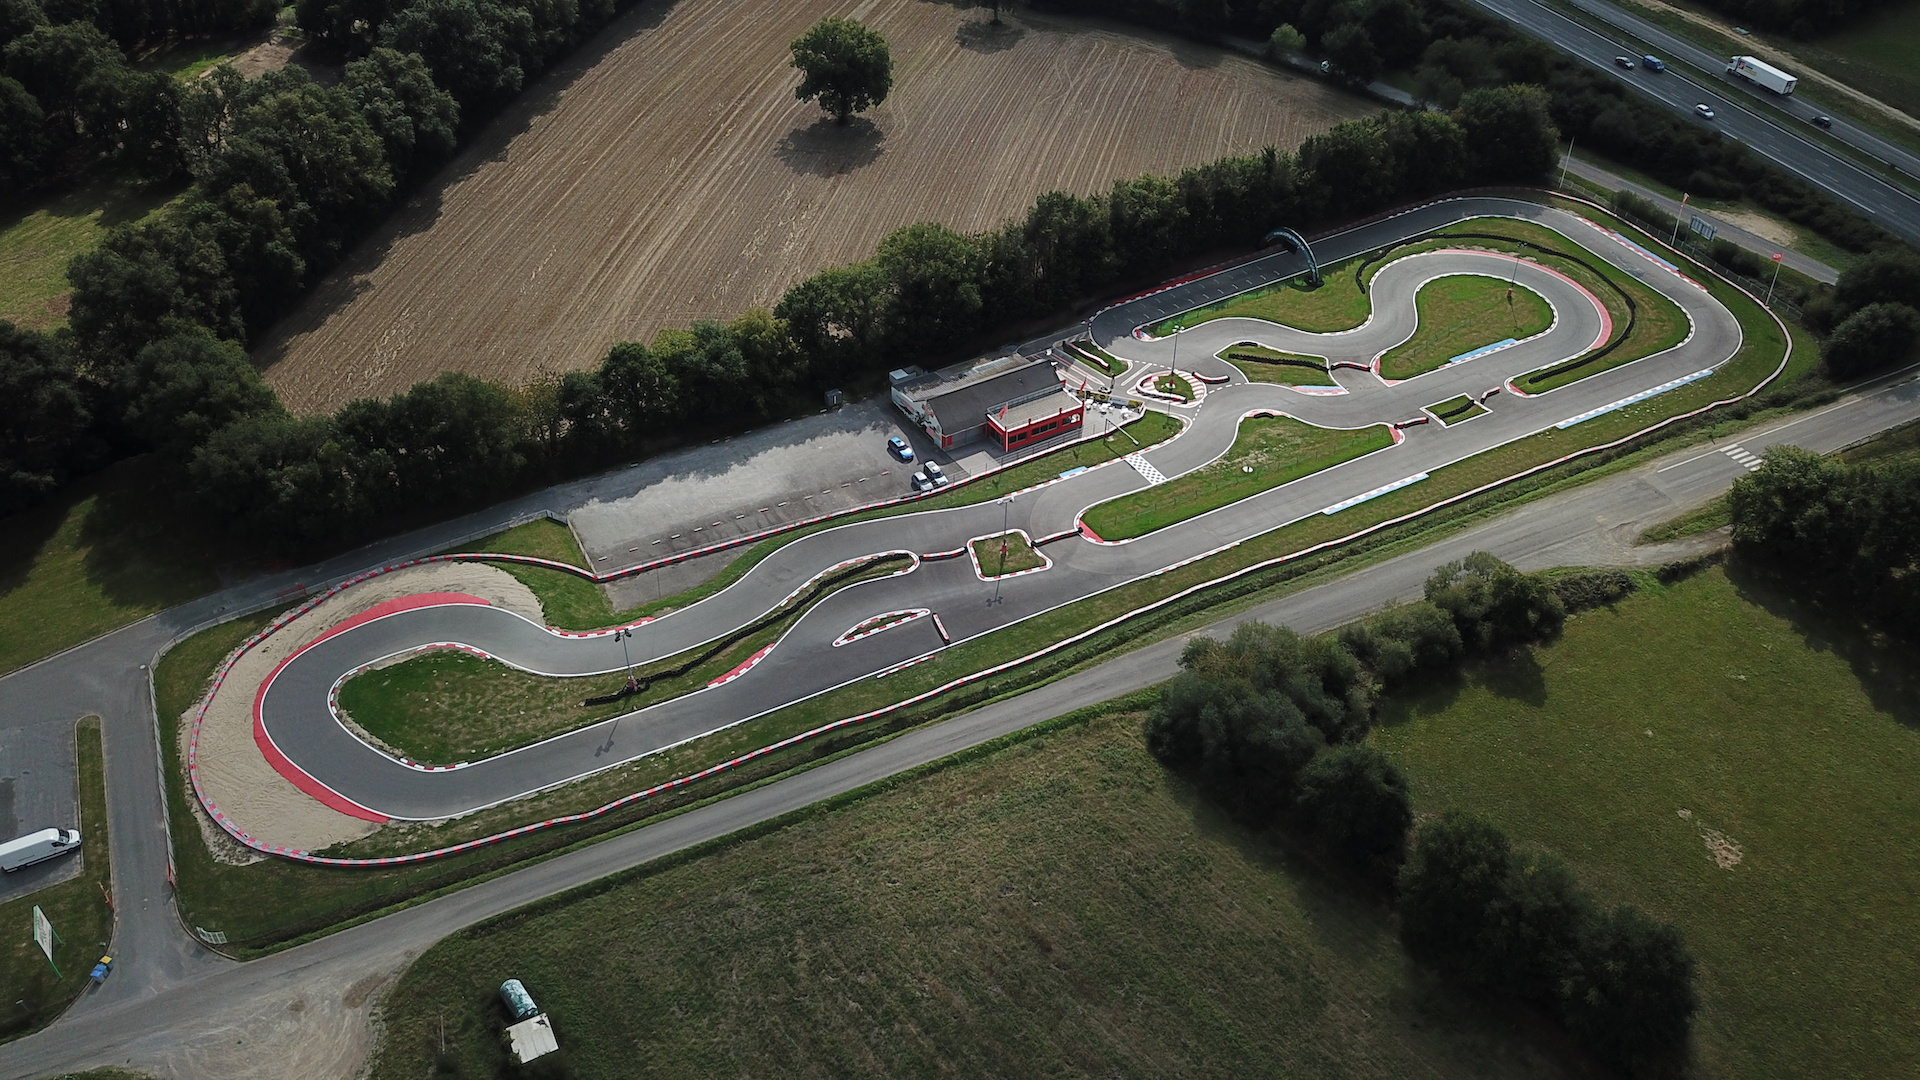 Circuit Outdoor de Karting à Nantes